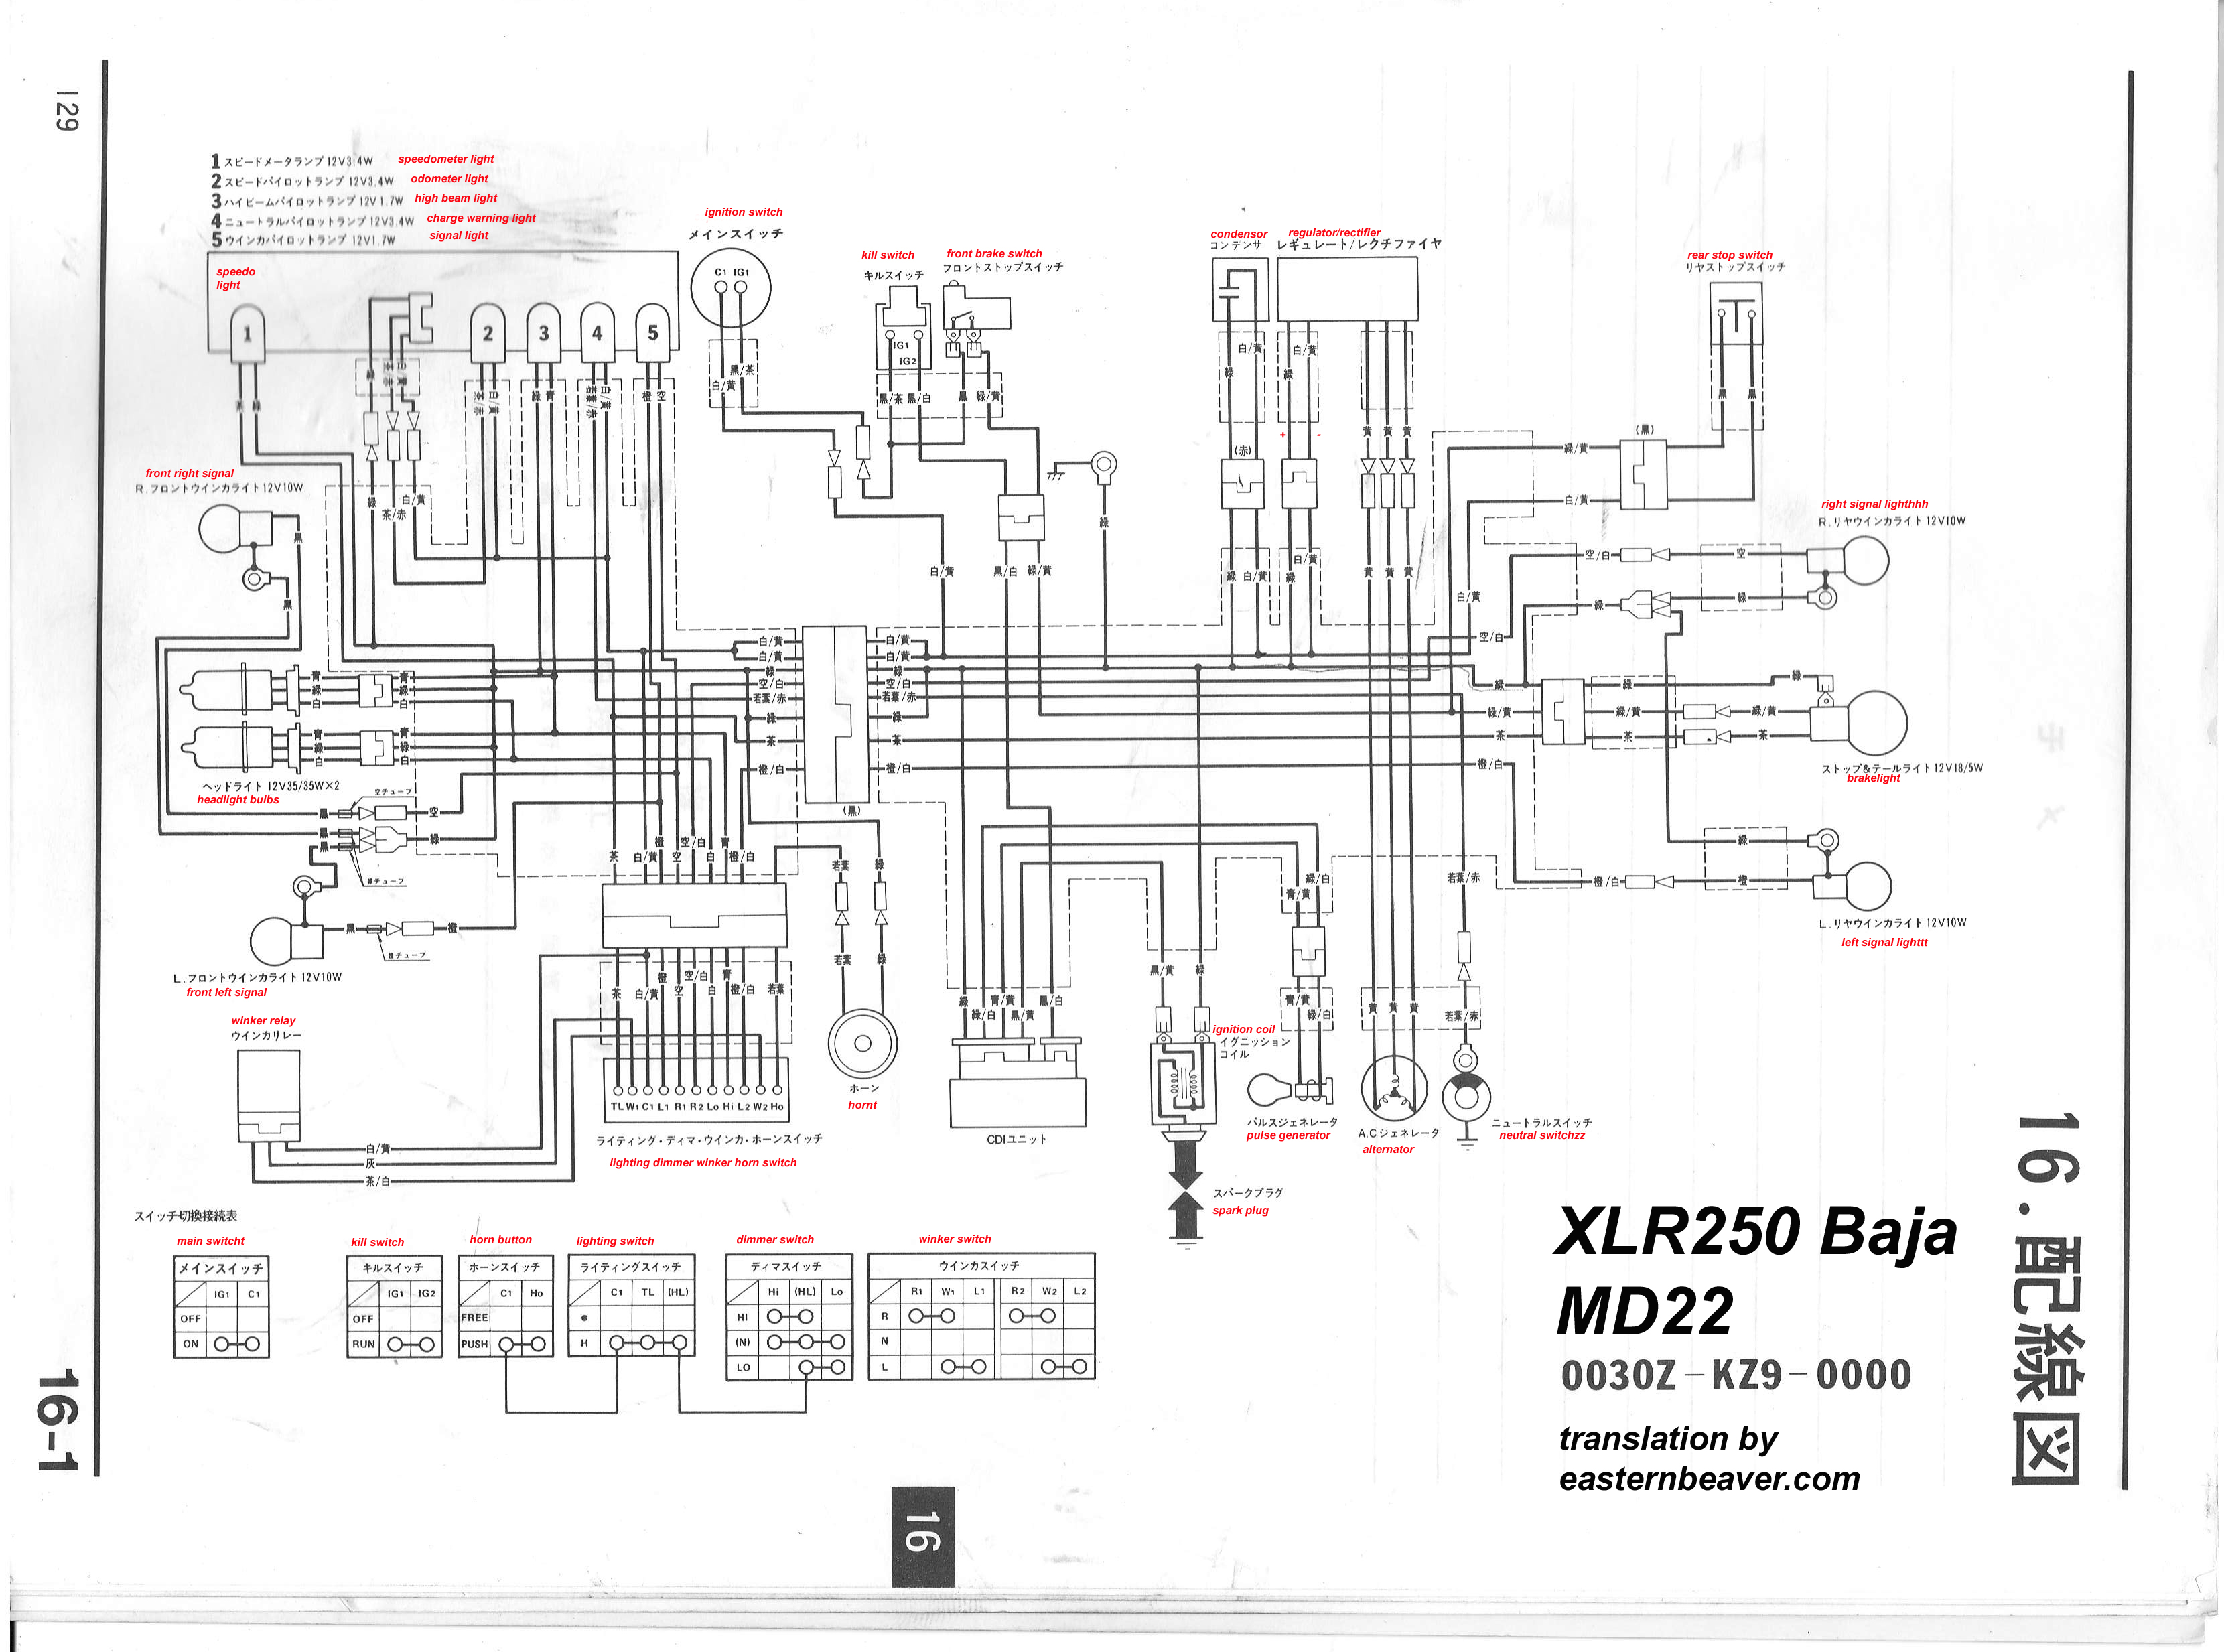 Honda Xlr Wiring Diagram Everything About Speakon Xlr250 Baja Rh Easternbeaver Com Balanced Without Ground